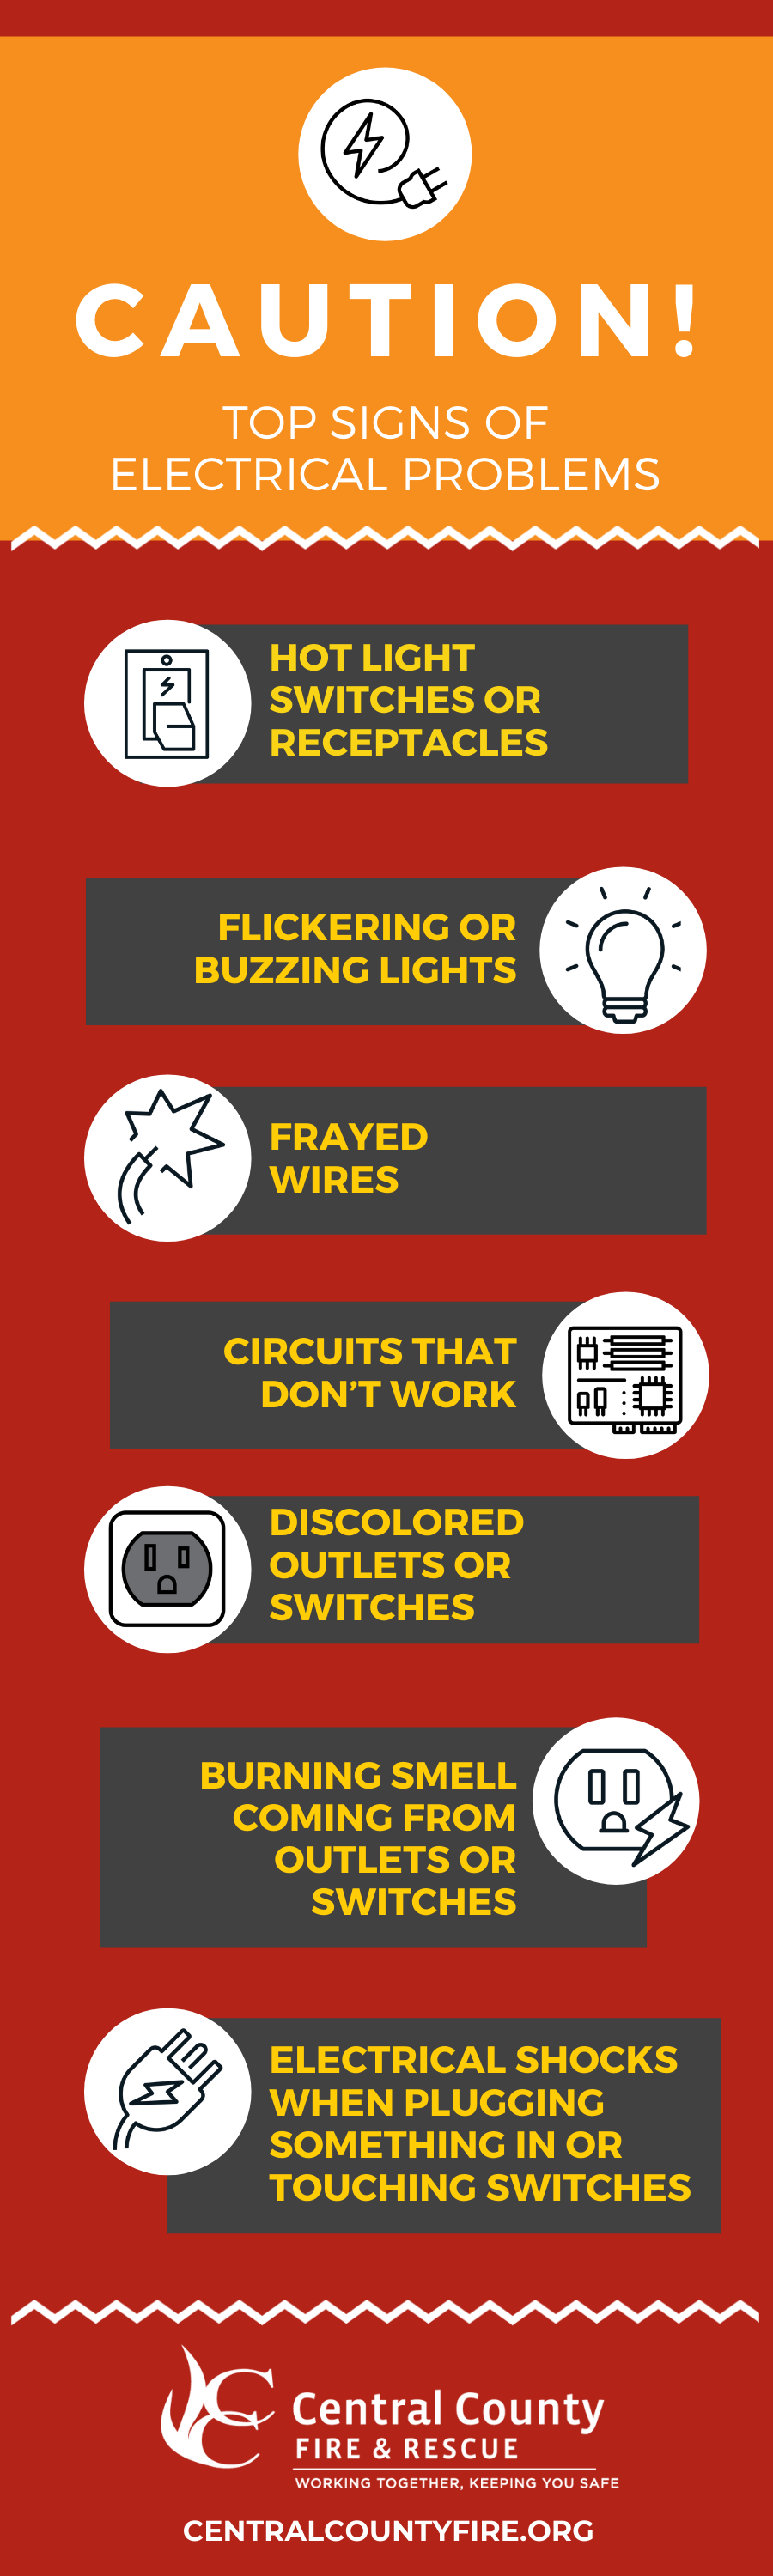 Caution! Signs of electrical problems: (1) Hot light switches or receptacles; (2) Flickering or buzzing lights; (3) Frayed wires; (4) Circuits that don't work; (5) Discolored outlets or switches; (6) Electrical shocks when plugging something in or touching switches; (7) Burning smell coming from outlets or switches